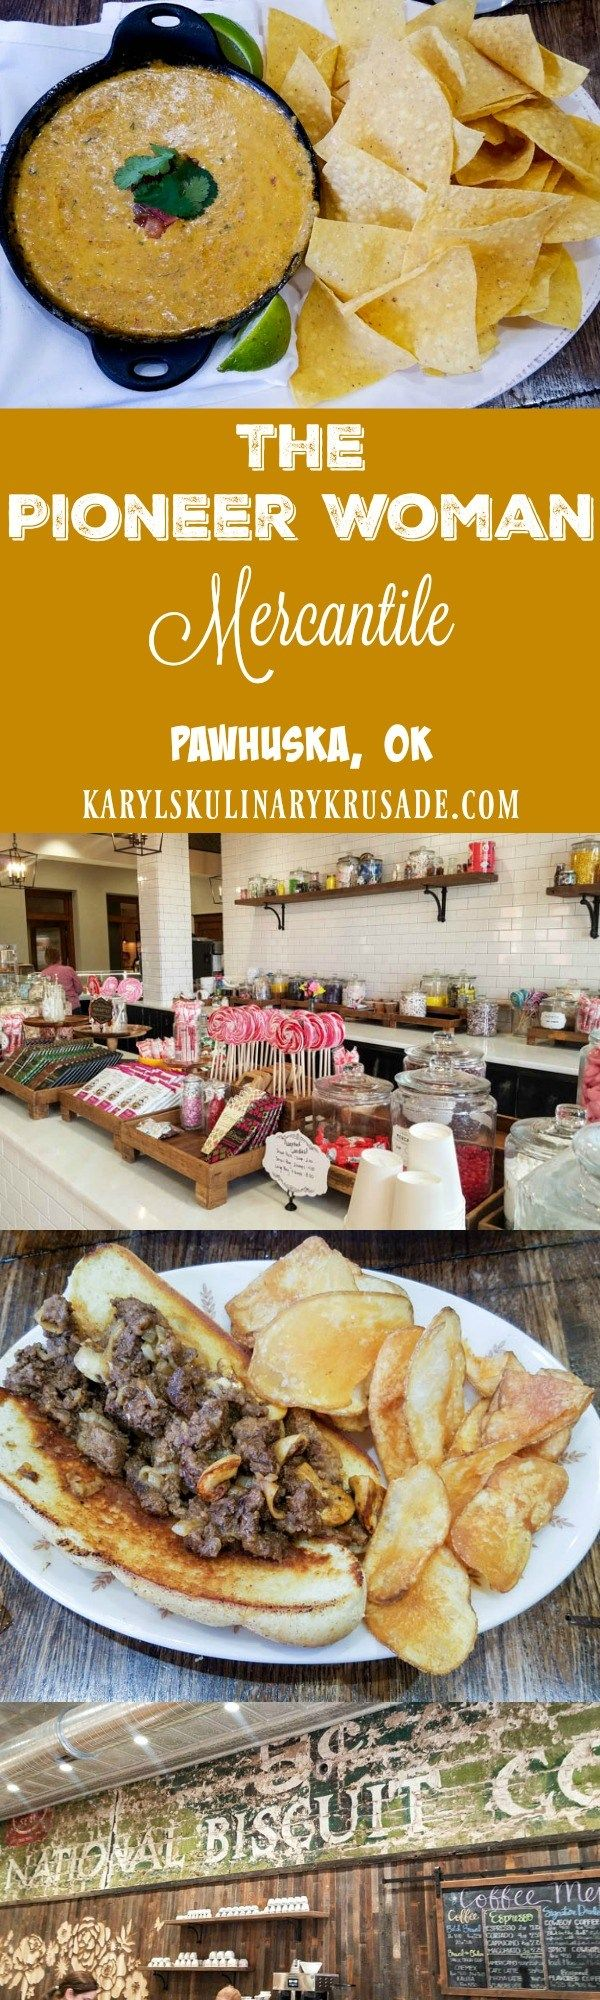 The Pioneer Woman Mercantile in Pawhuska OK is a little bit of everything...General Store, Deli, and Bakery. Arrive early to check it all out, bring your appetite, and make sure you leave room for your sweet tooth!